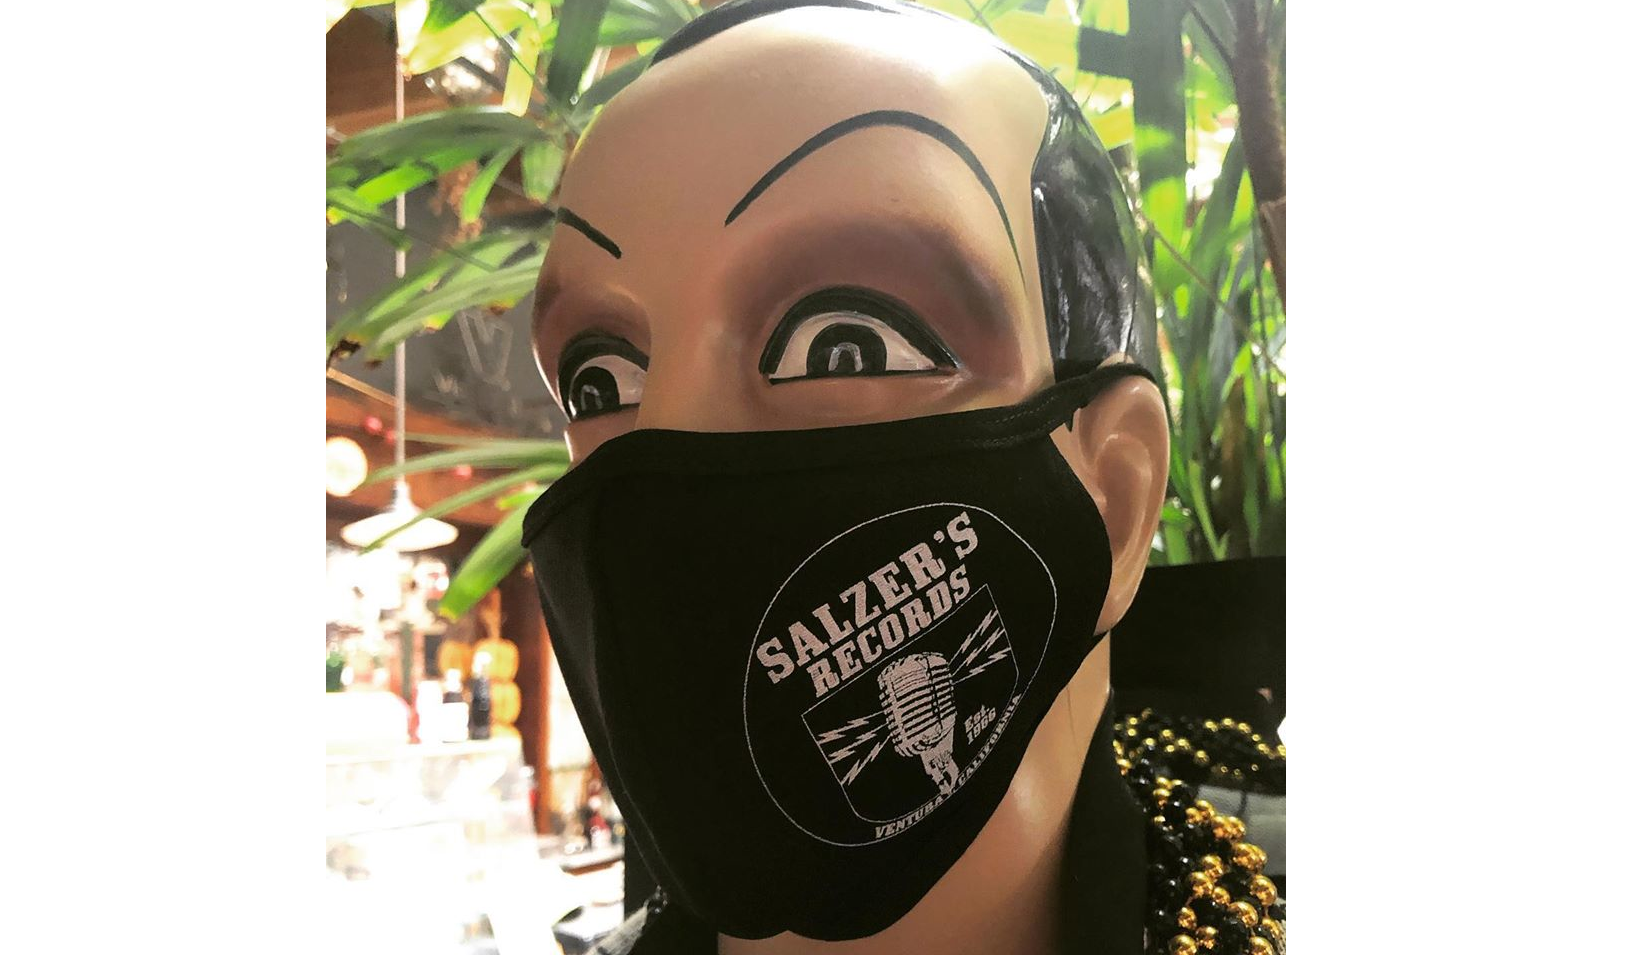 Salzer's Records - Face Mask